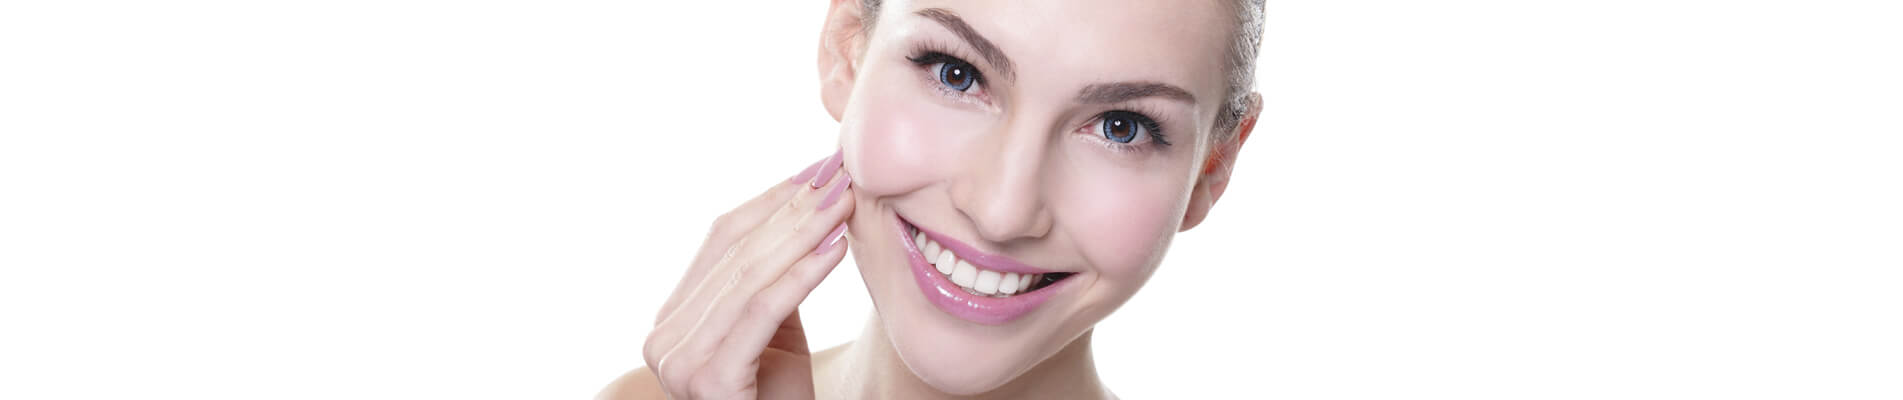 How to Prevent Crooked Teeth